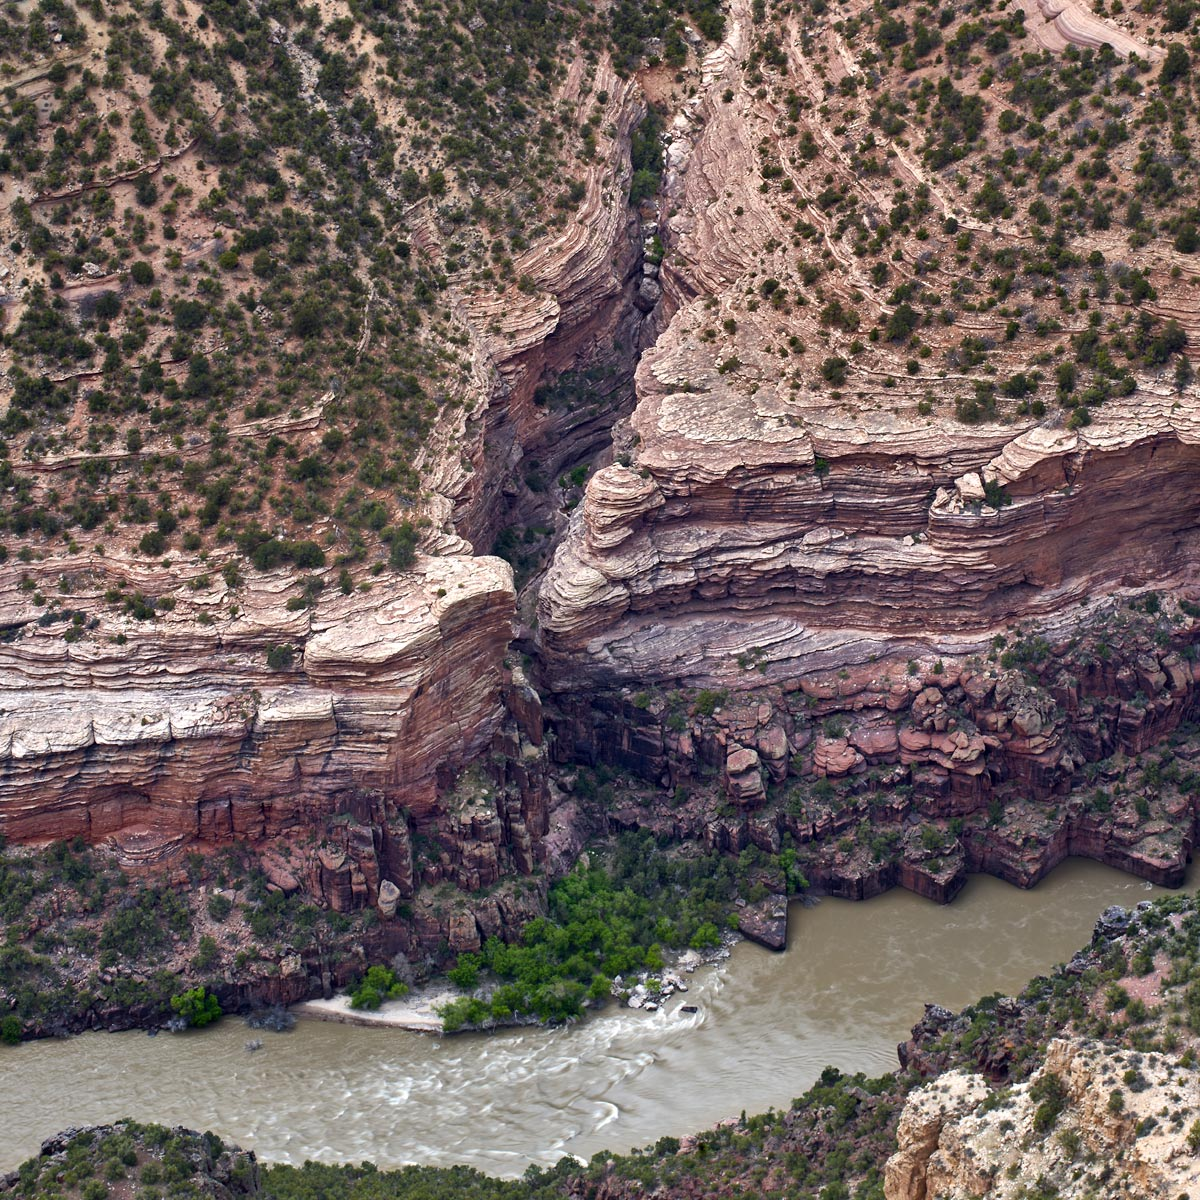 David Patterson Photography/Fine Art Photography of Landscape, Dinosaur National Monument